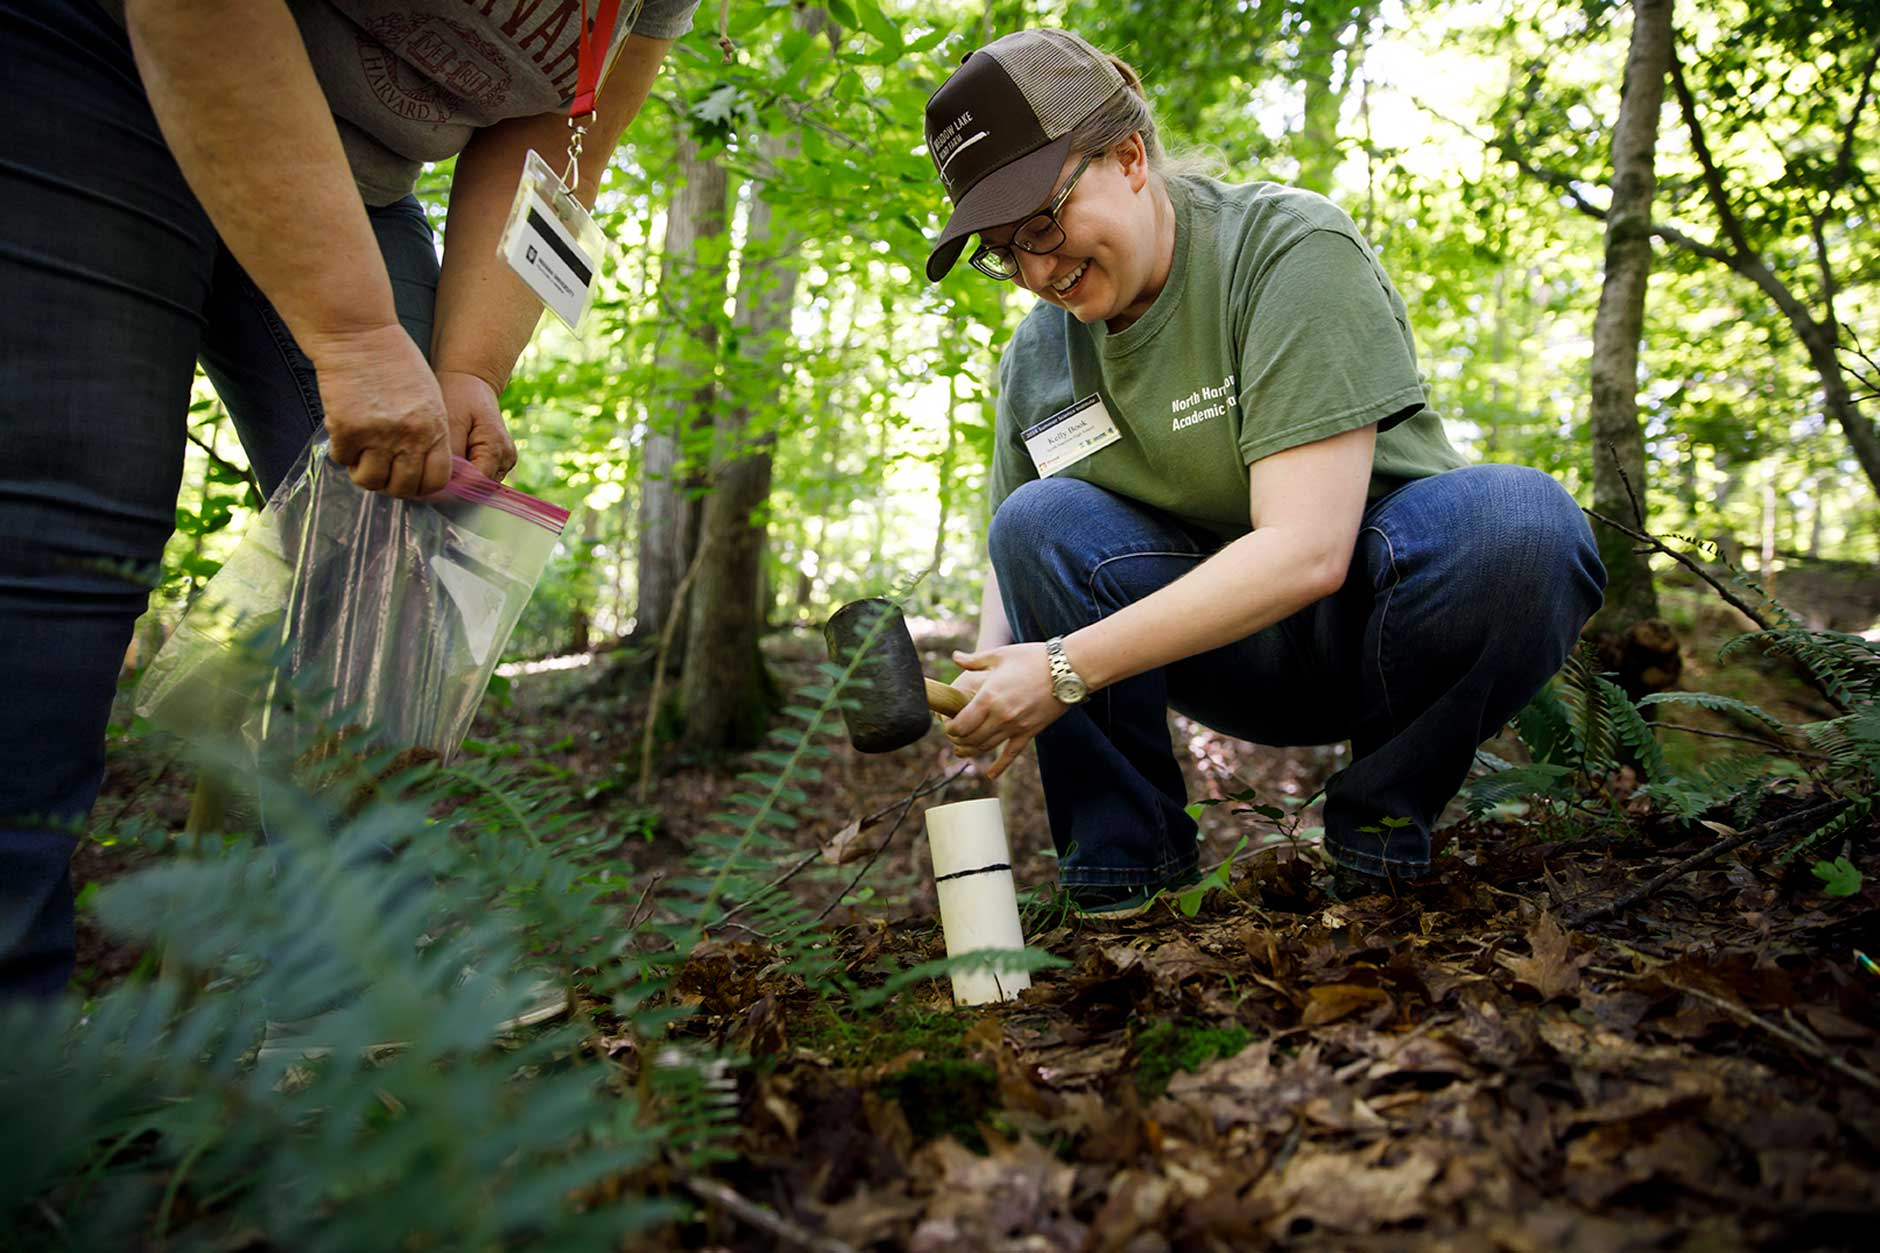 North Harrison High School teacher Kelly Book takes a soil sample at the Indiana University Research and Teaching Preserve on Thursday, June 14, 2018. Indiana high school and middle school teachers are participating in a three-day workshop hosted by the IU Environmental Resilience Institute and WonderLab. (James Brosher/IU Communications)